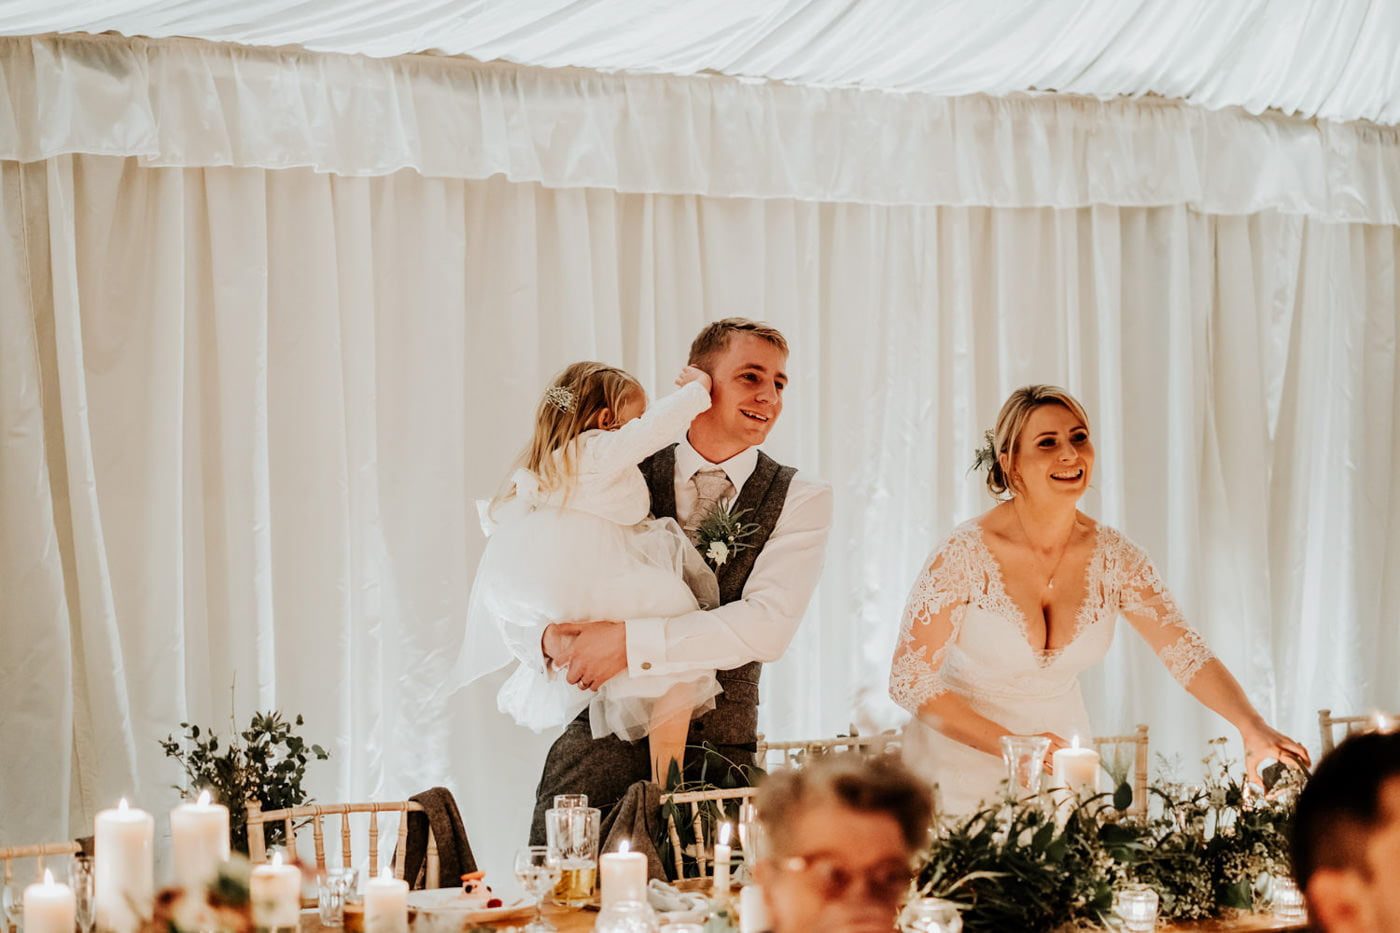 Emily and Rich, Moonraker Hotel, Wiltshire 50